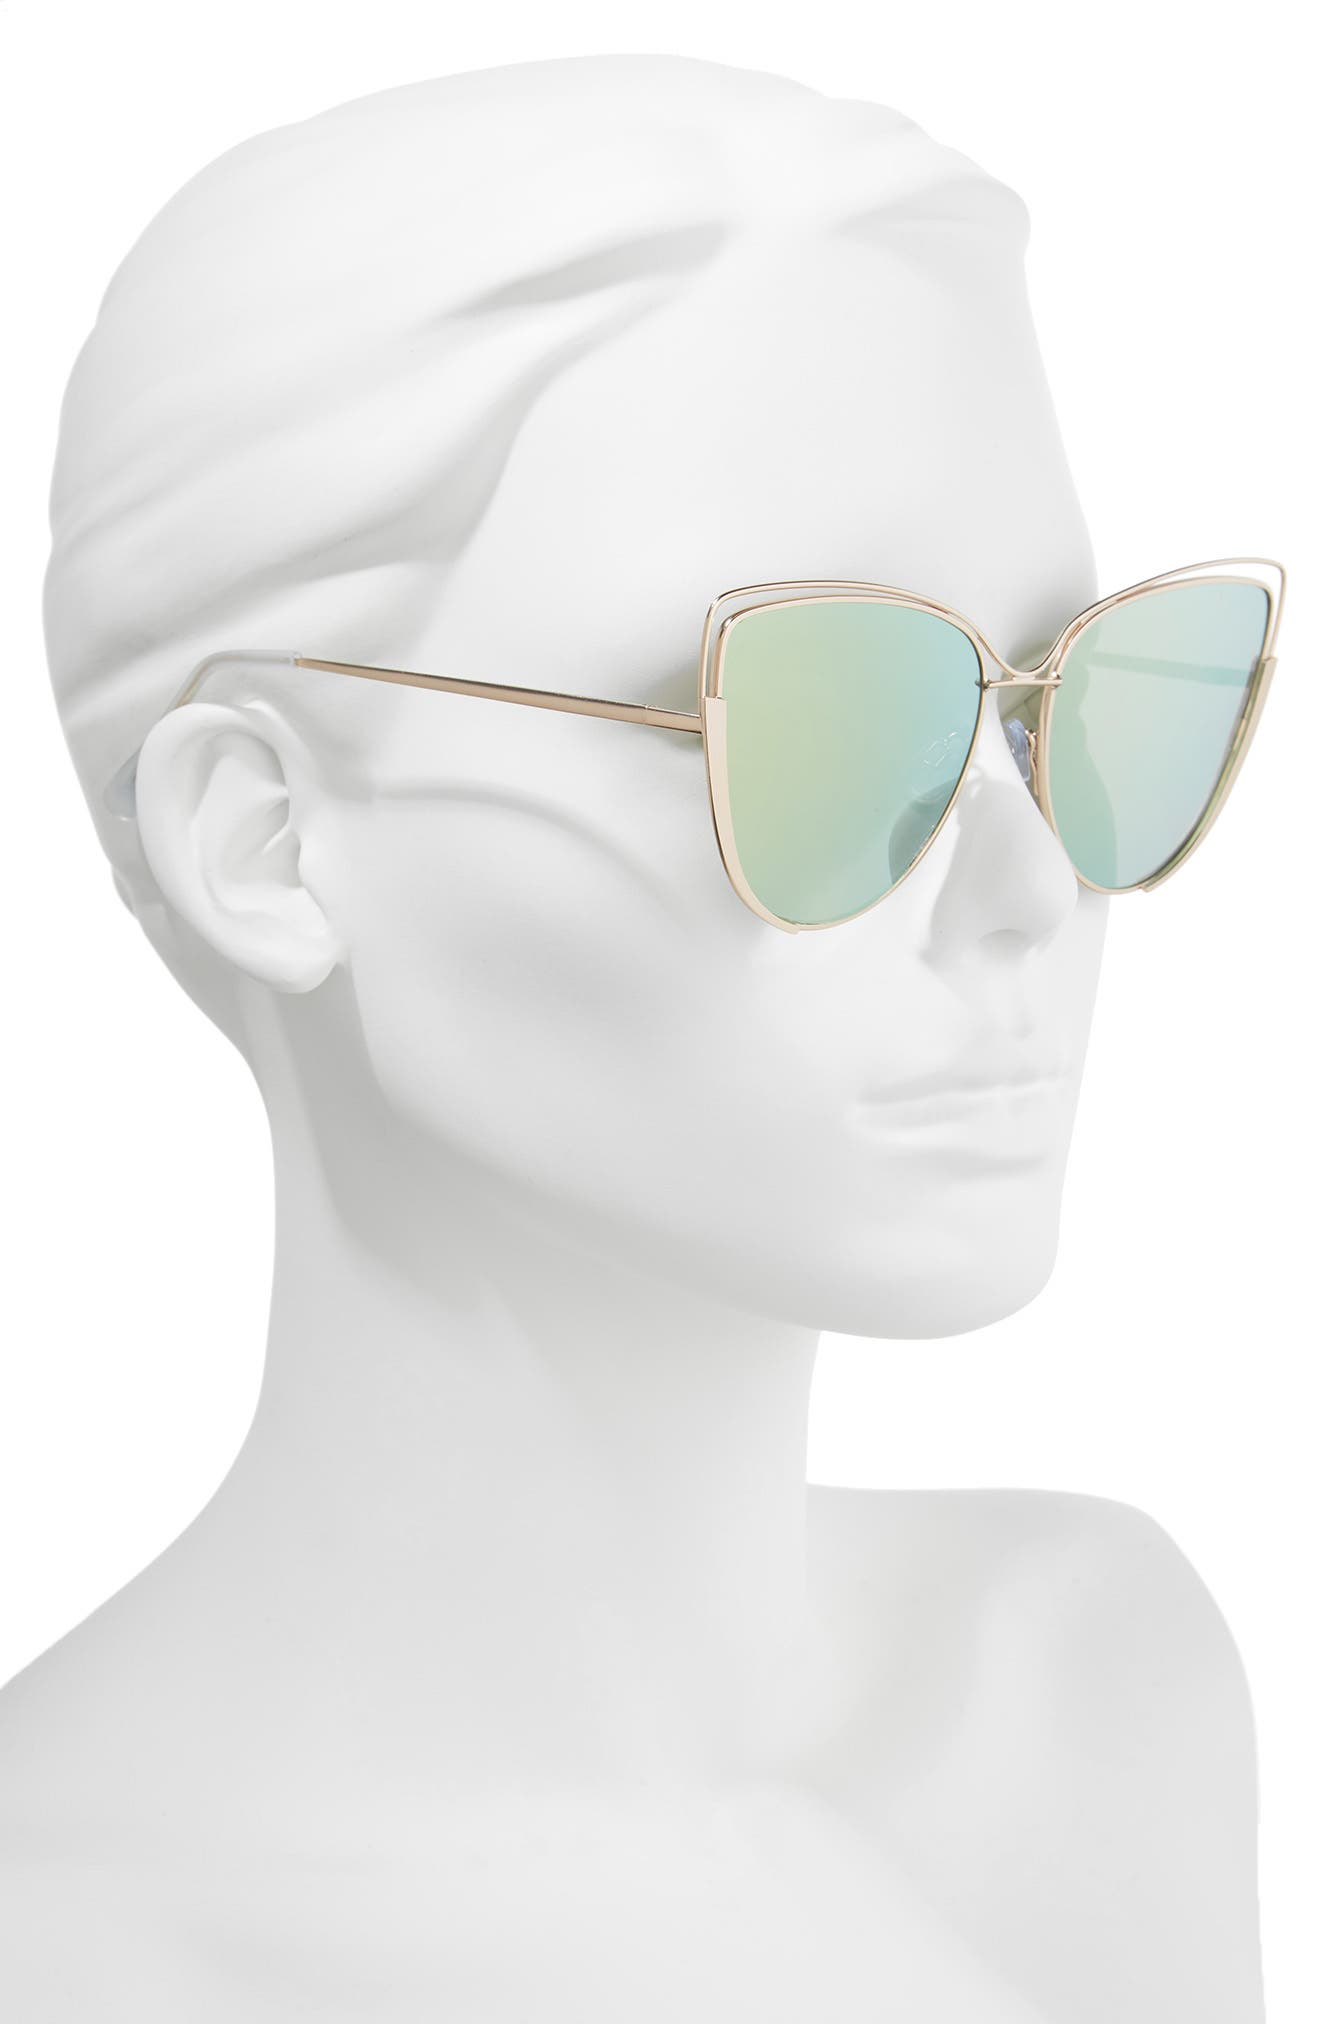 Futuristic Cat Eye Sunglasses,                             Alternate thumbnail 2, color,                             710